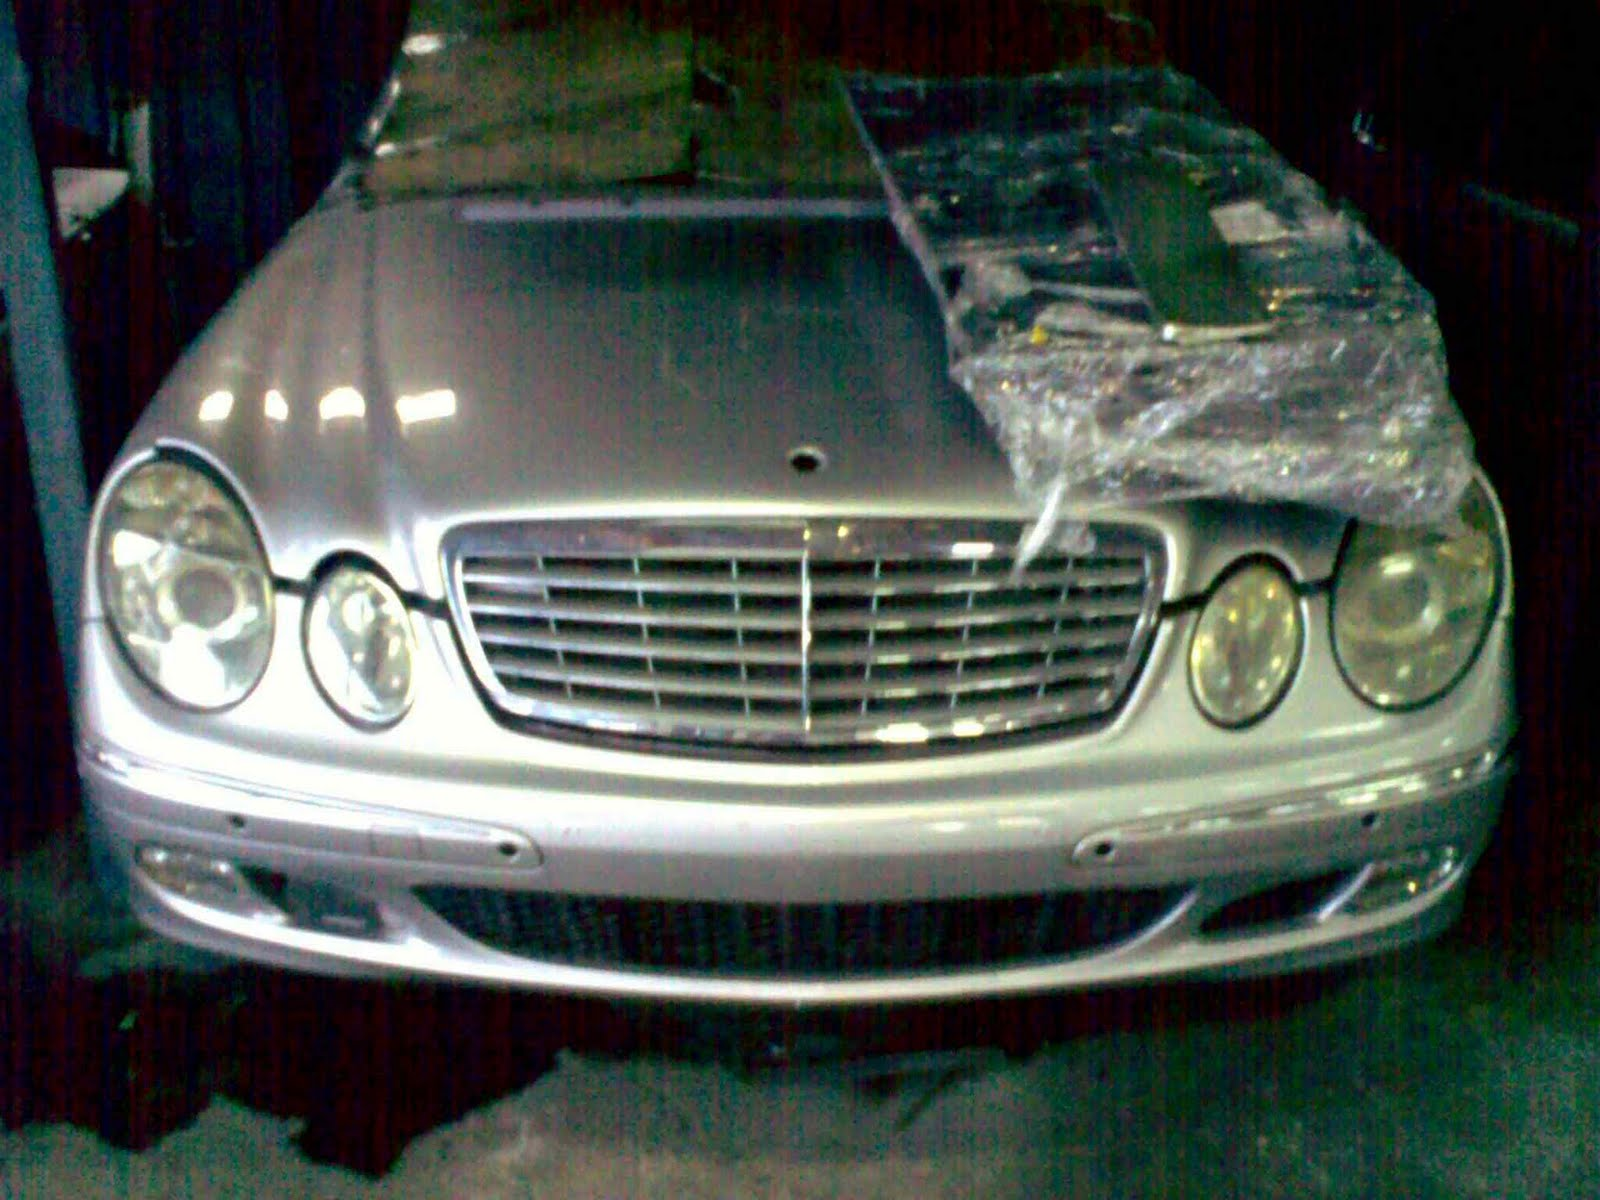 Posted By CHAN USED PARTS FOR BMW U0026 MERC At 6:43 PM